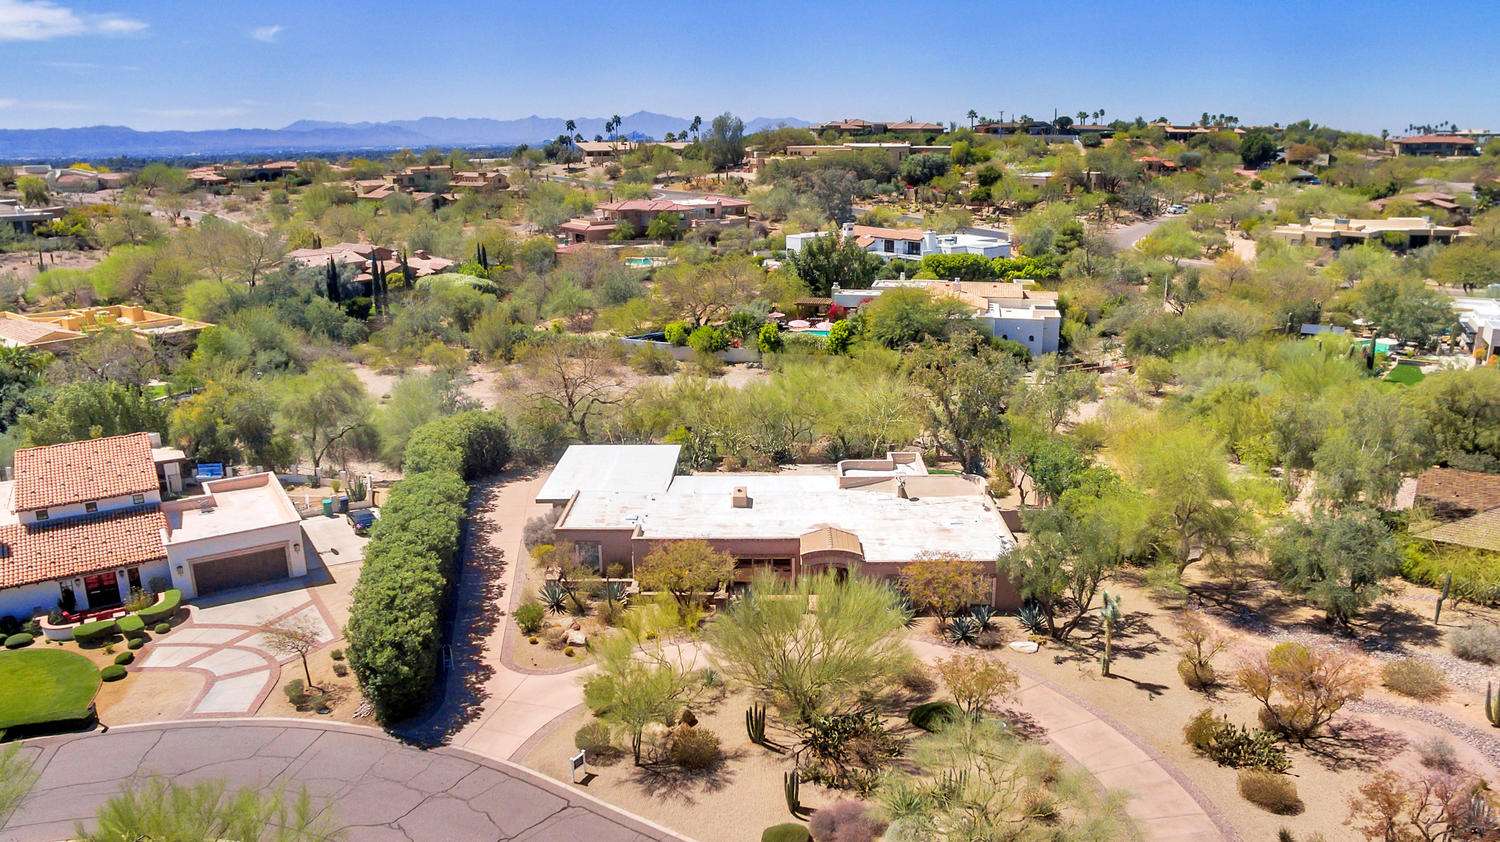 4436 E Maderos Del Cuenta Dr-large-039-1-Aerial View-1500x843-72dpi.jpg